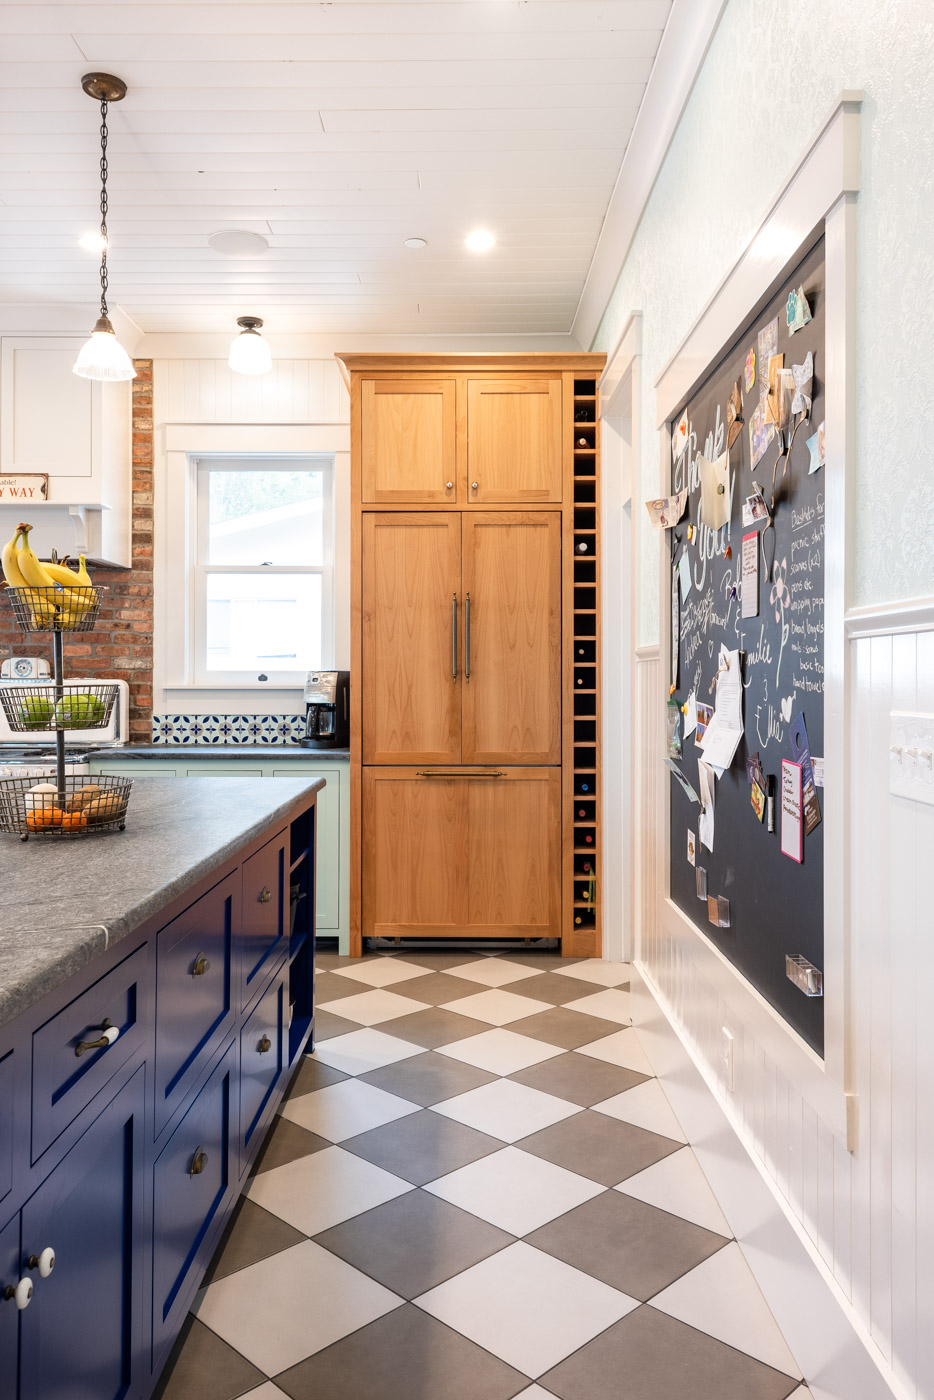 Eclectic Country Craftsman kitchen with custom blue painted cabinets and stained wood refrigerator door panels